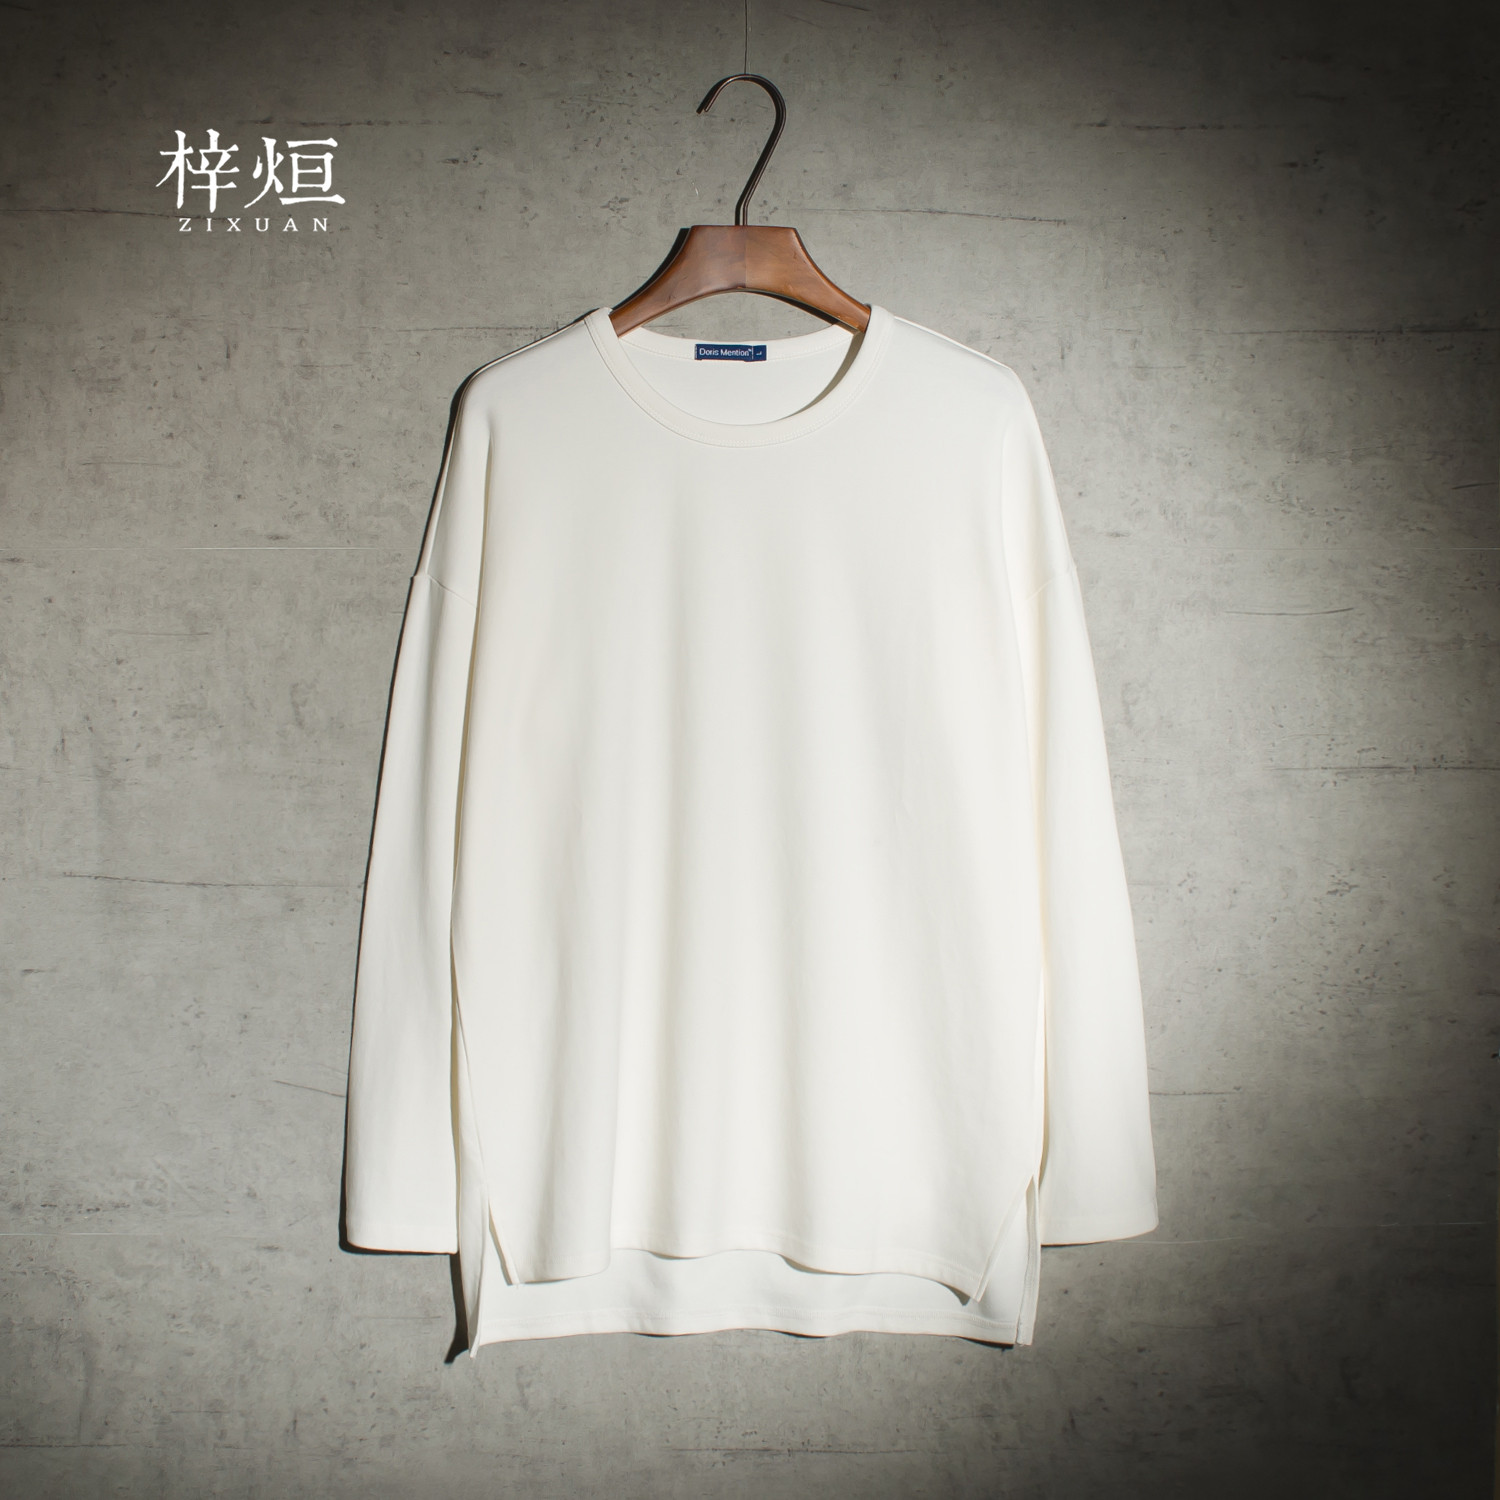 New autumn mens round neck loose fitting Pullover basic bottomed Shirt Youth solid color Korean long sleeve T-shirt